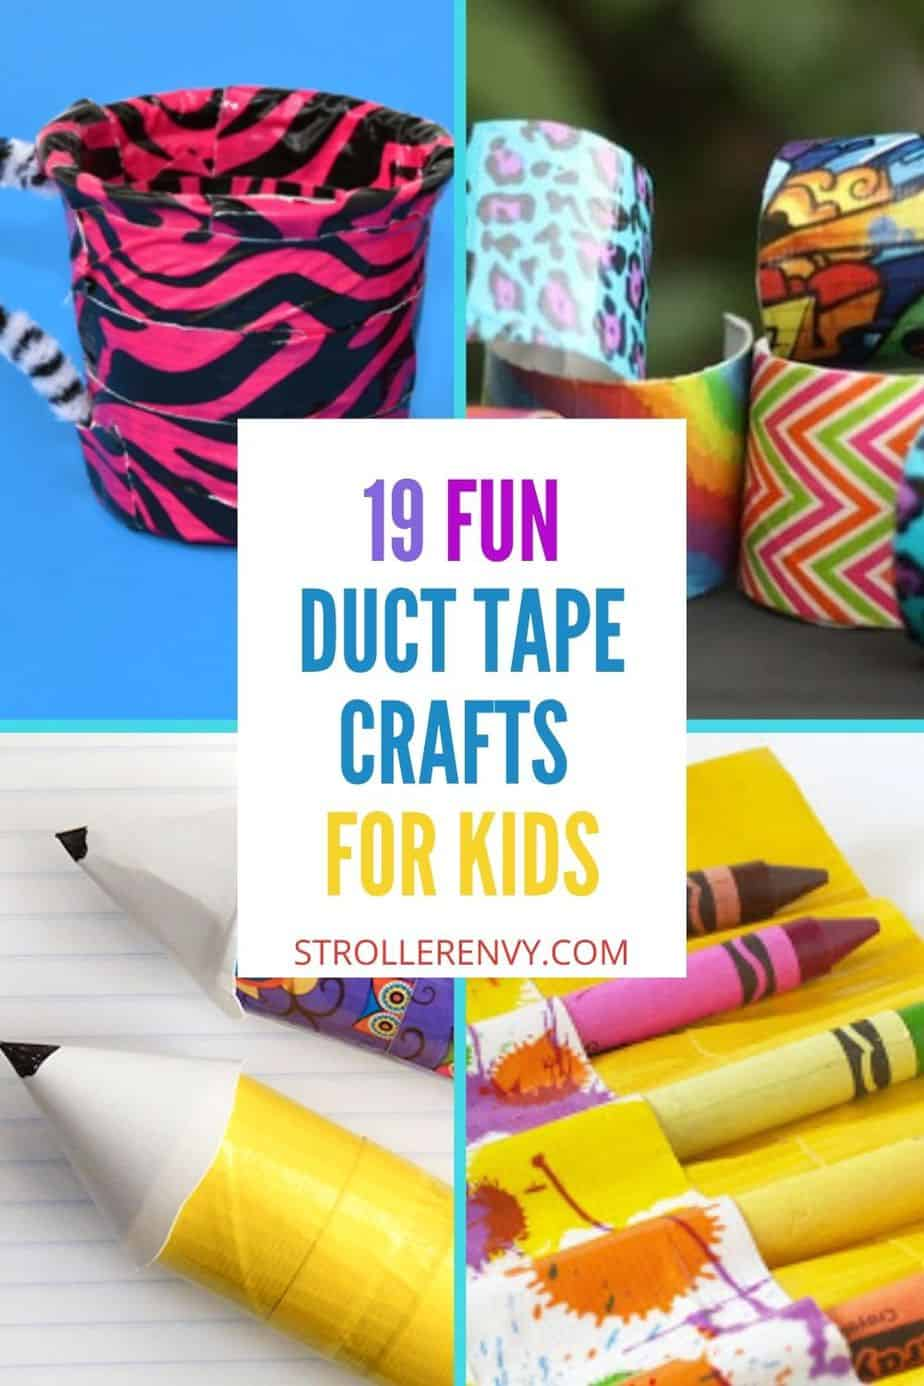 duct tape crafts pin collage